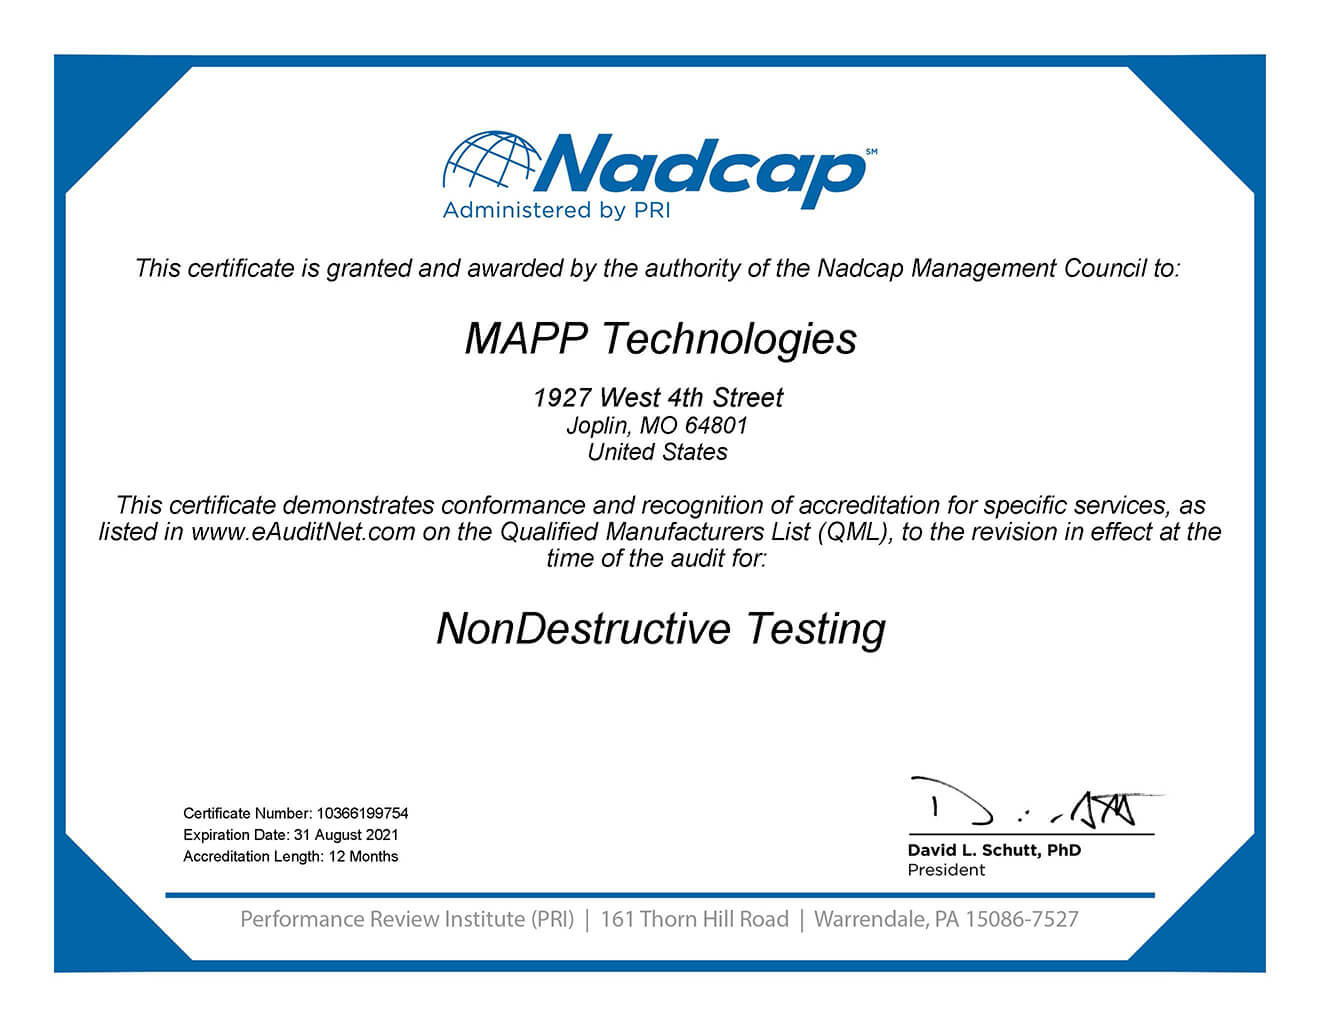 MAPP NonDestructive Testing Certificate